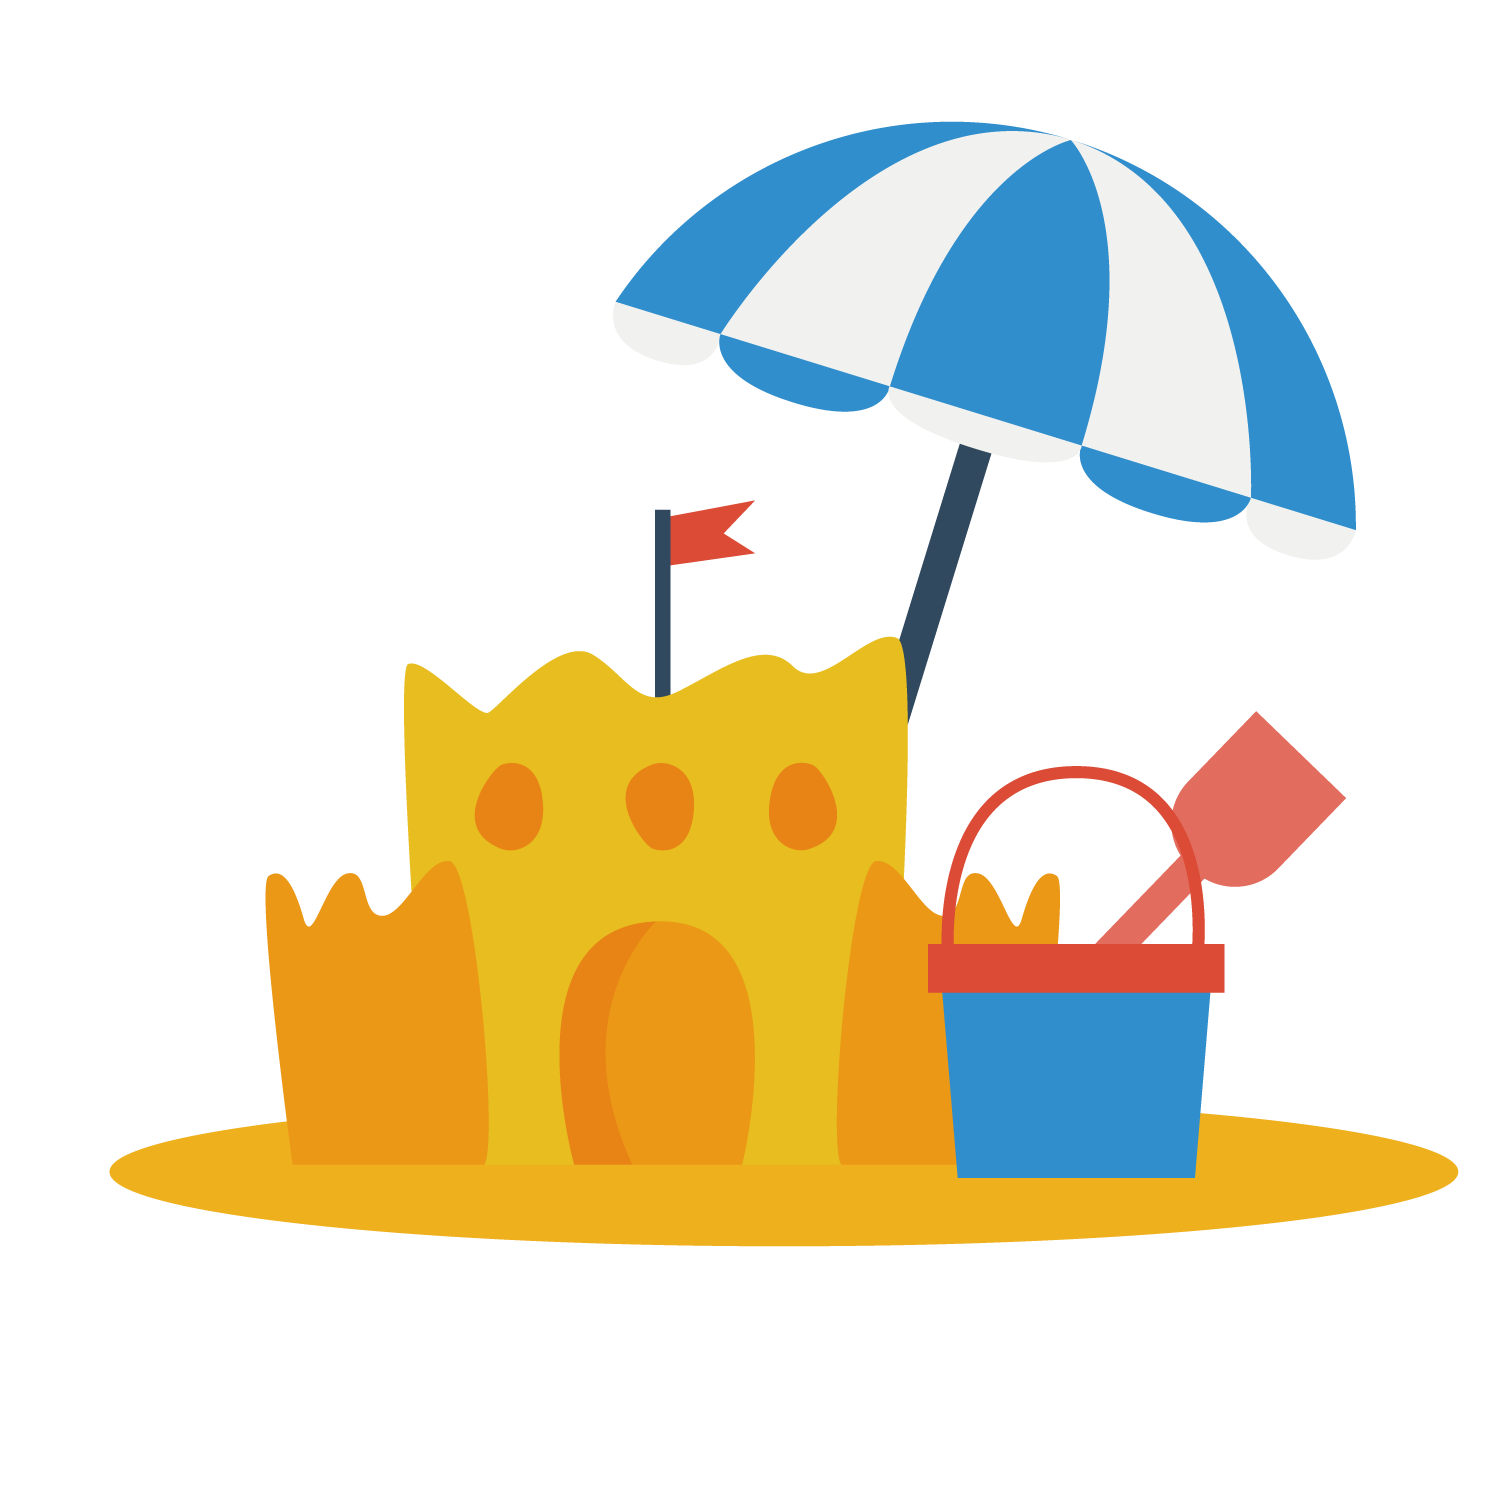 banner Vector candy castle. Sand art and play